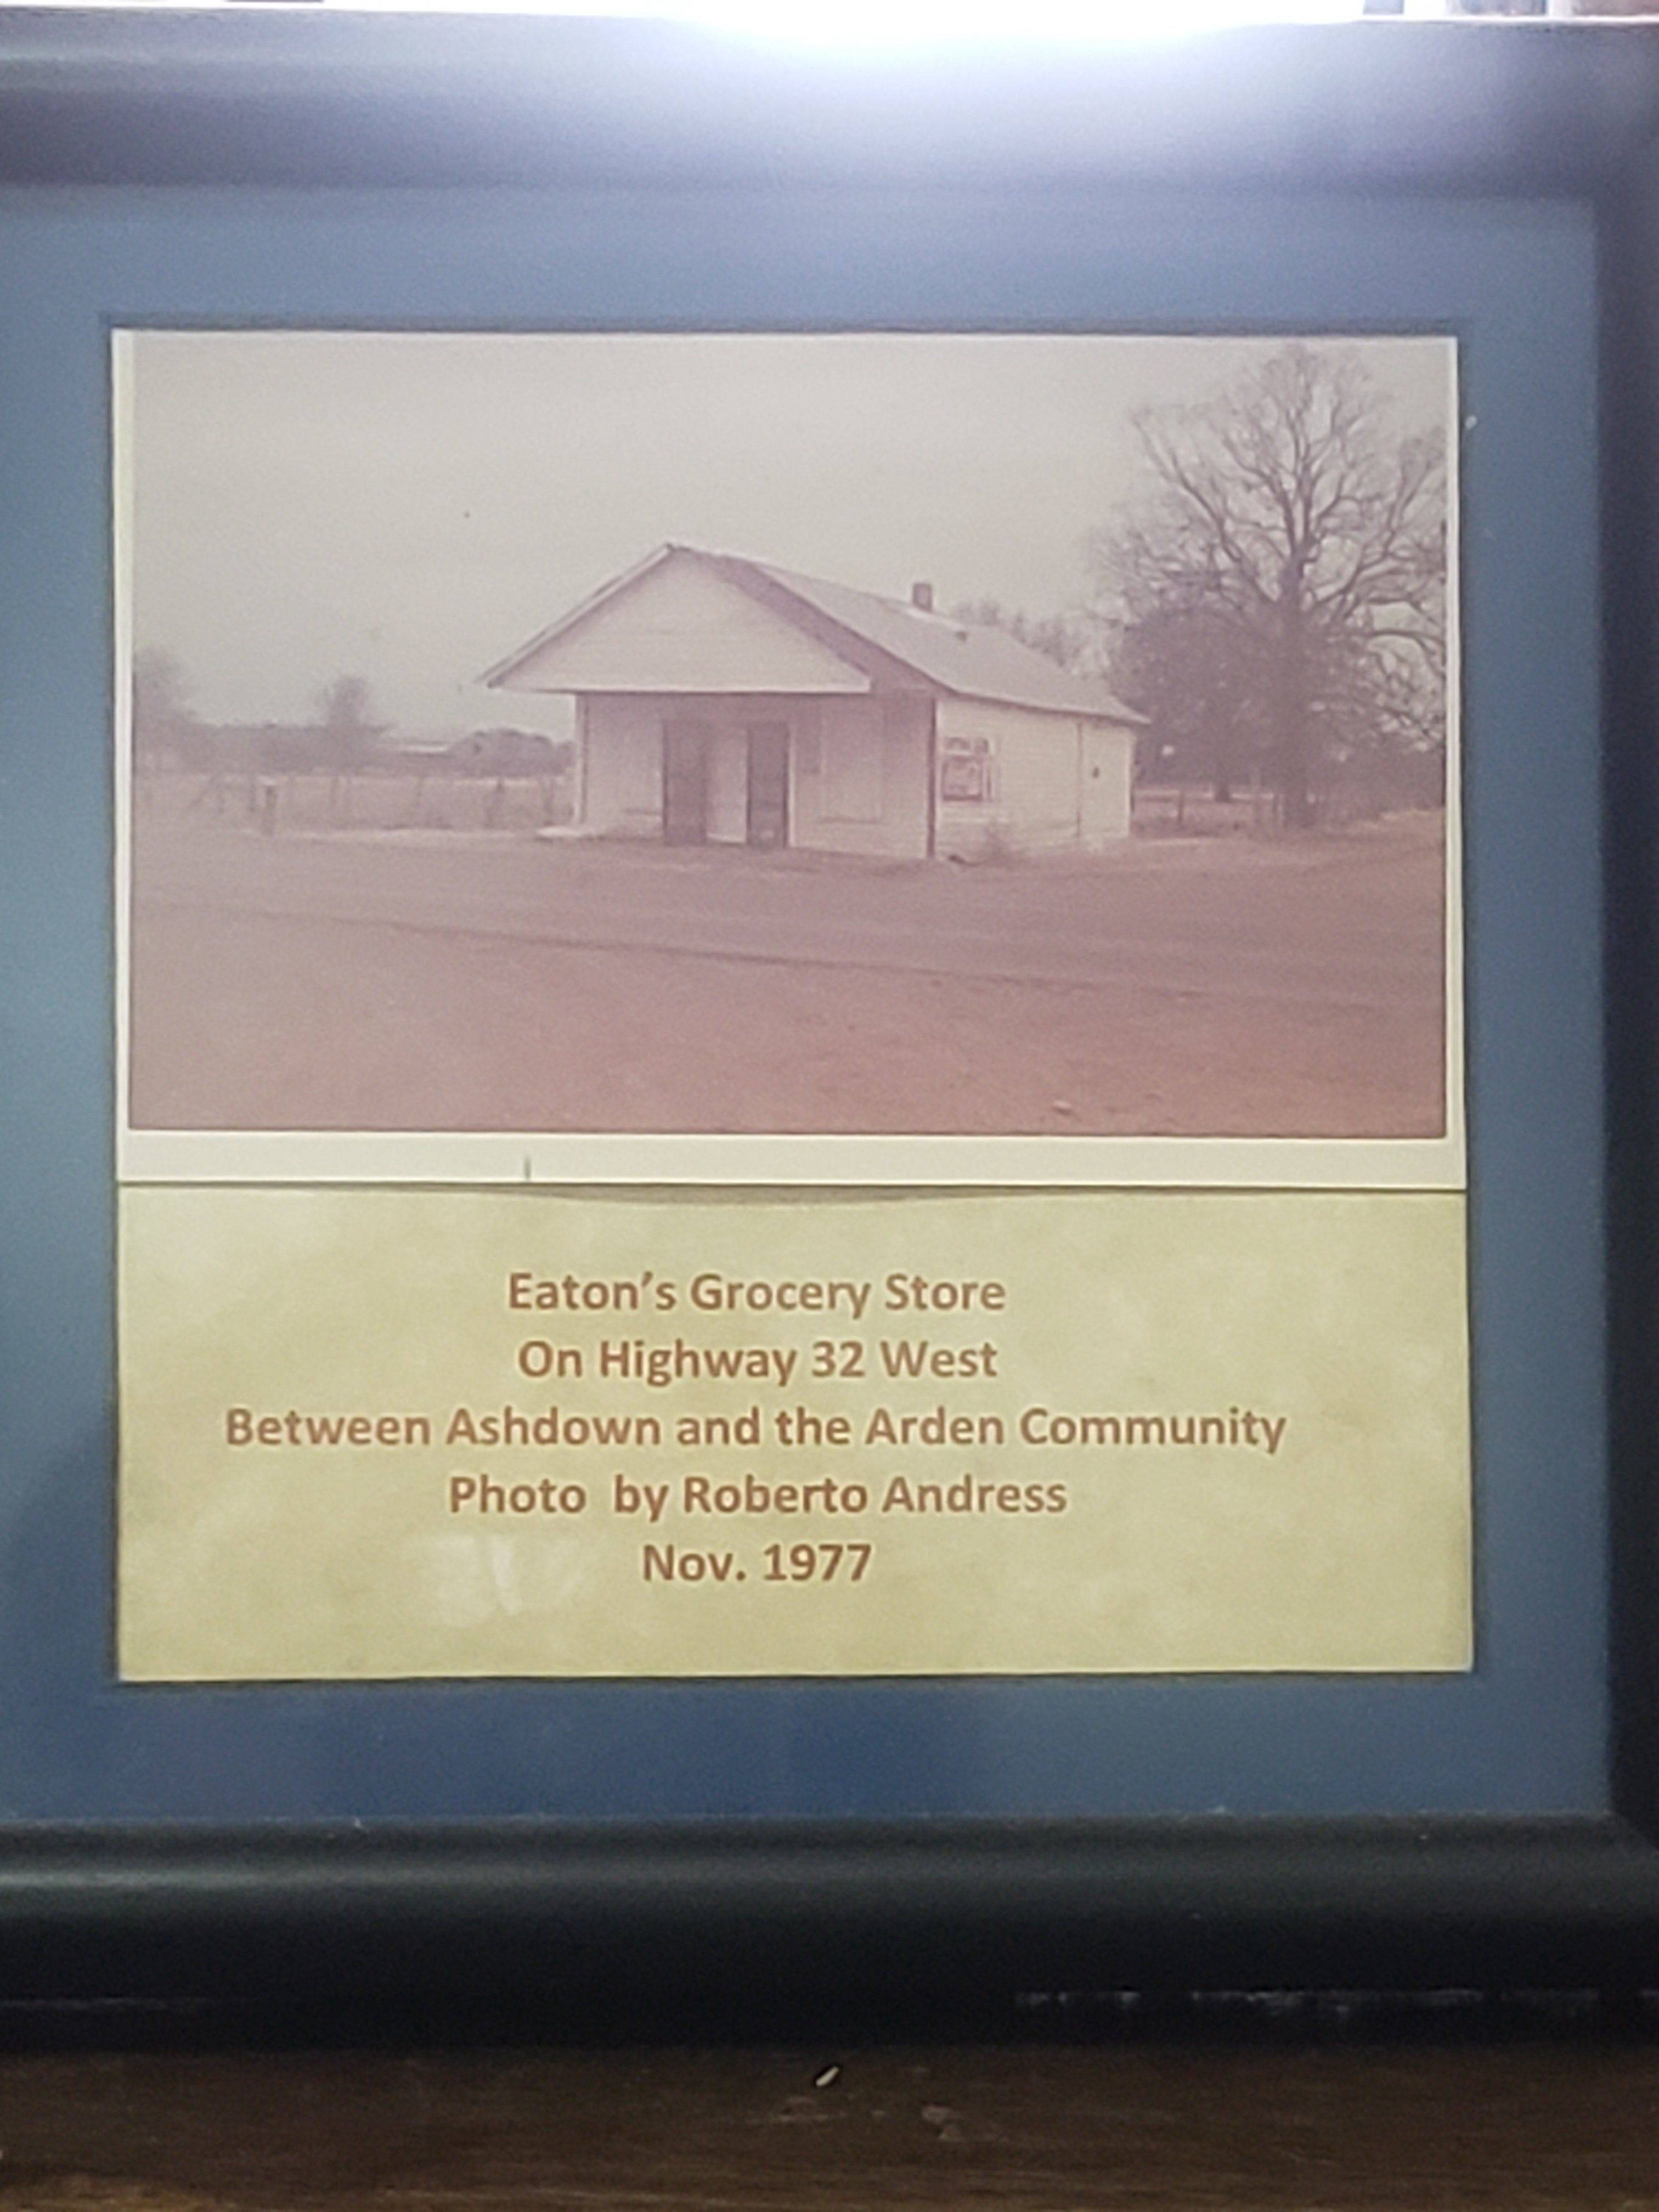 Eaton's Grocery Store